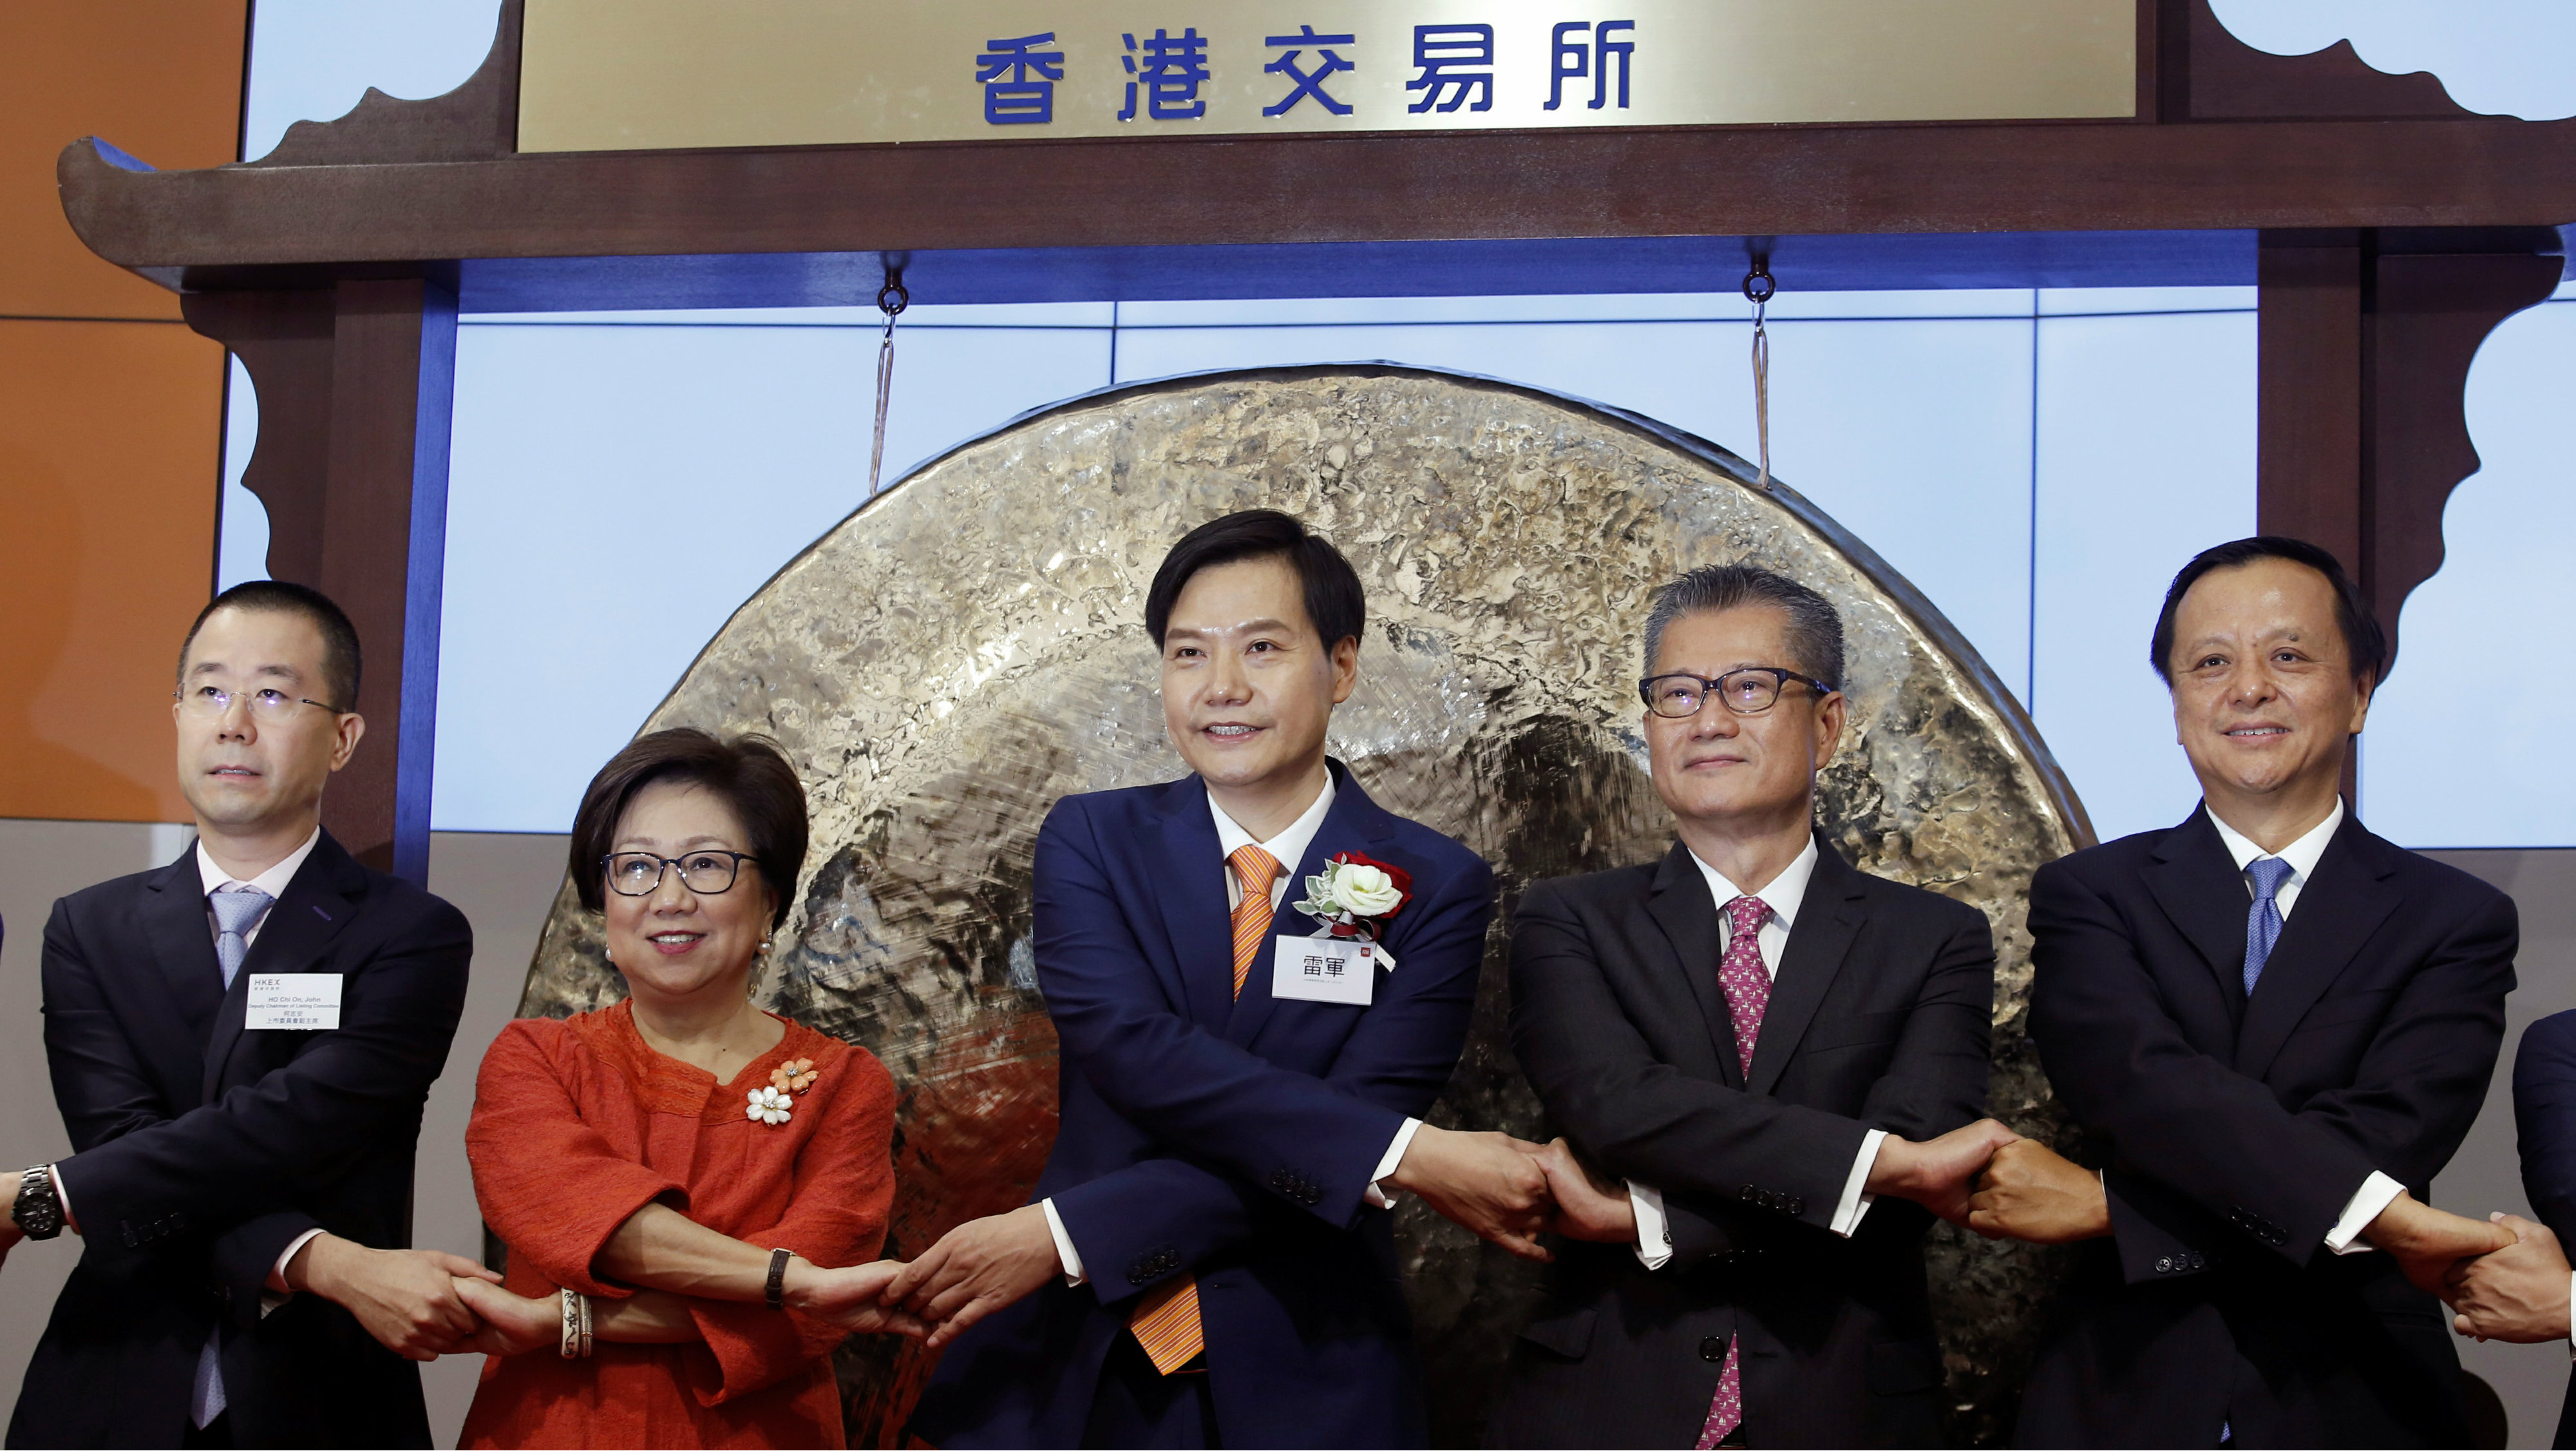 Xiaomi founder, Chairman and CEO Lei Jun (C) attends the listing of the company with Hong Kong Exchanges and Clearing Chairman Laura Cha (2nd L), Financial Secretary Paul Chan (2nd R) and Hong Kong Exchanges and Clearing Chief Executive Charles Li (R) at the Hong Kong Exchanges in Hong Kong, China July 9, 2018.